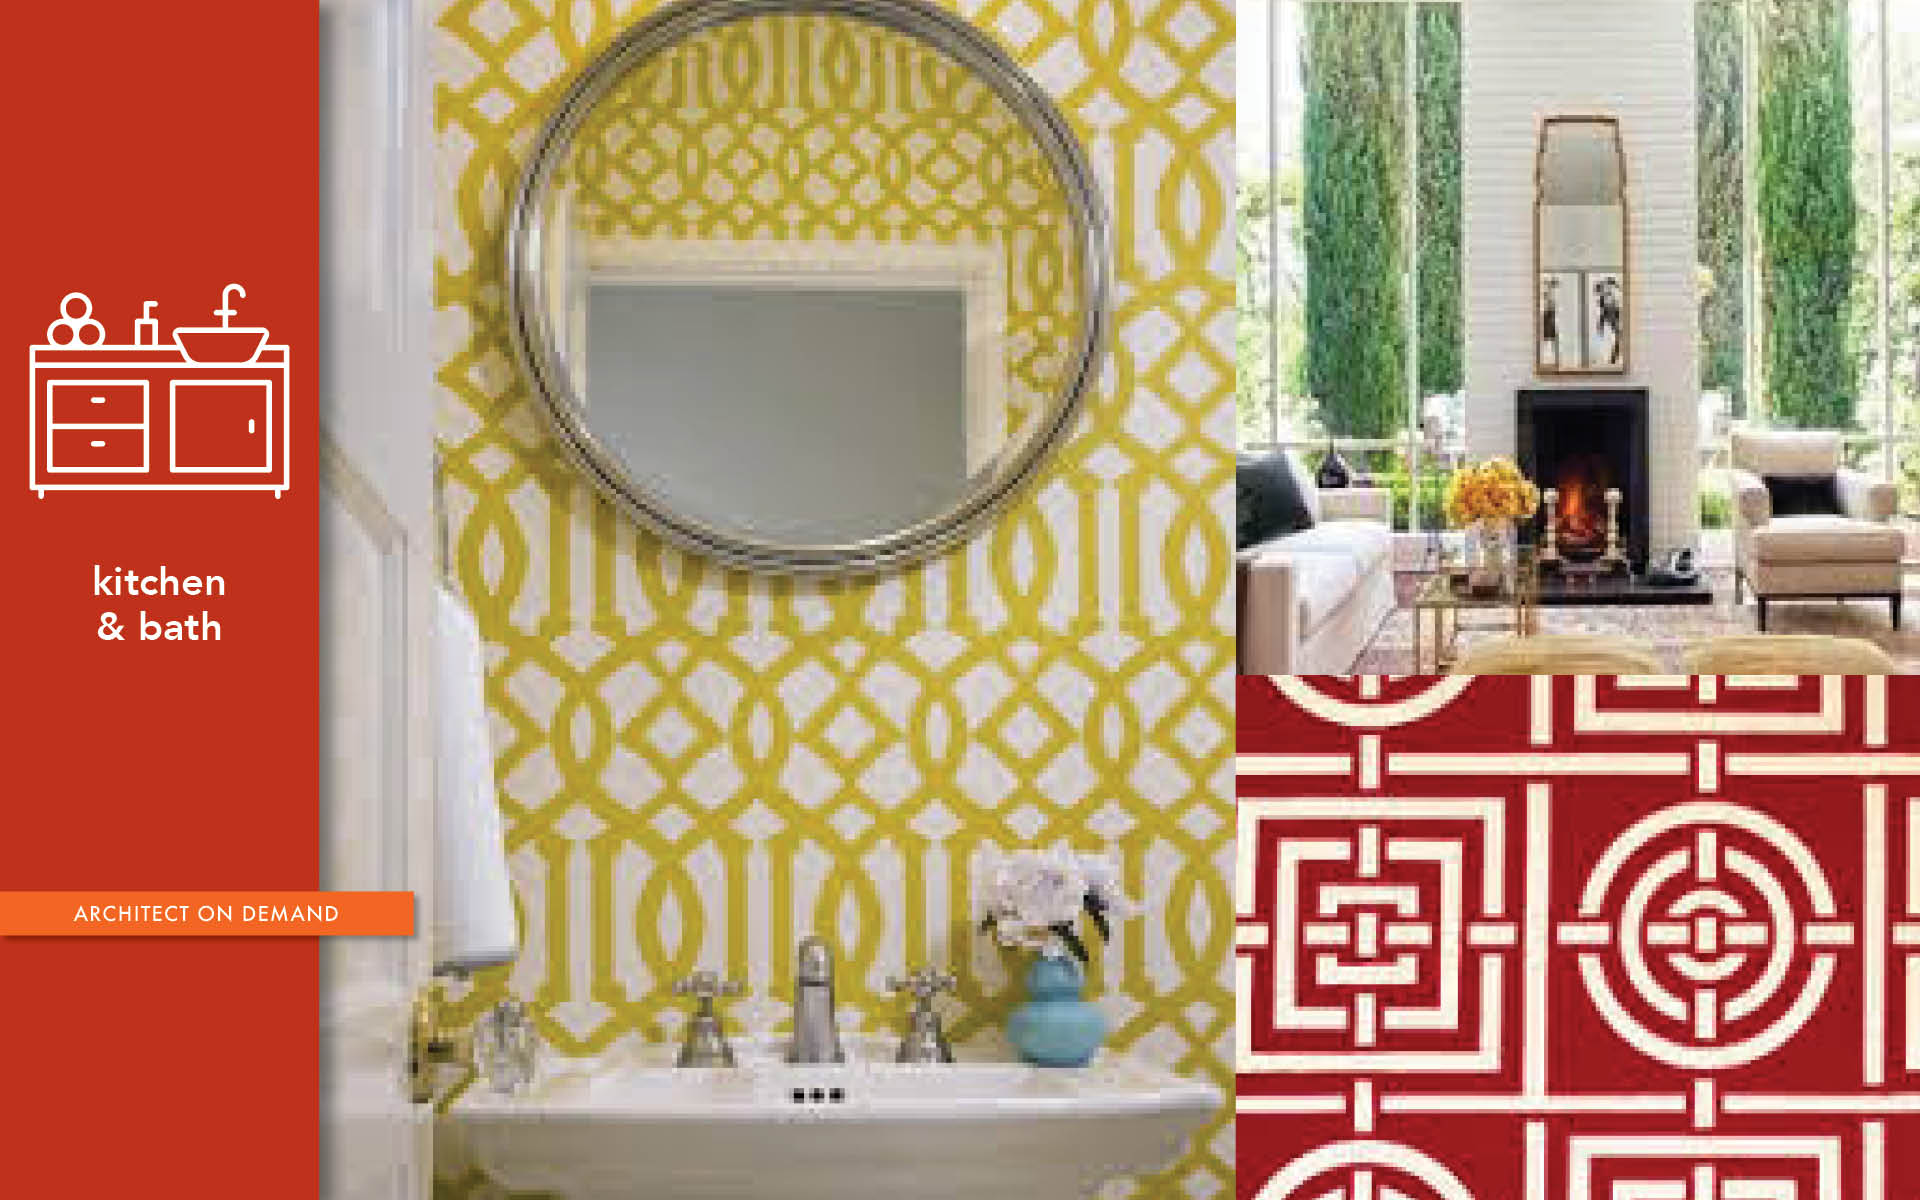 Hollywood Regency Style, remodel, architect on demand, advice without strings